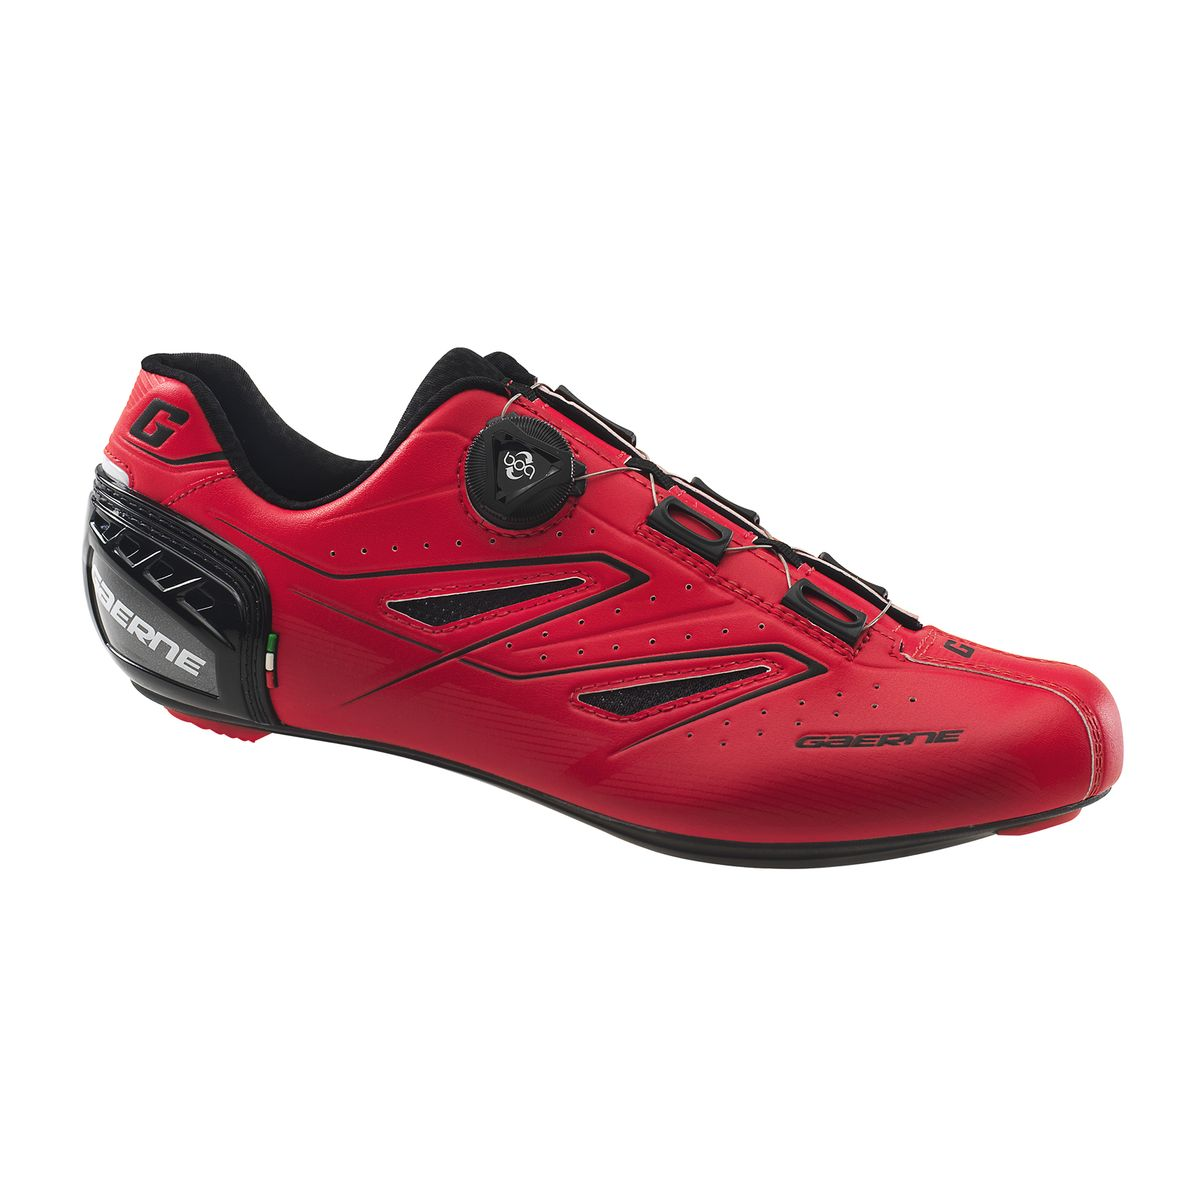 GAERNE CARBON G.TORNADO road shoes | Shoes and overlays